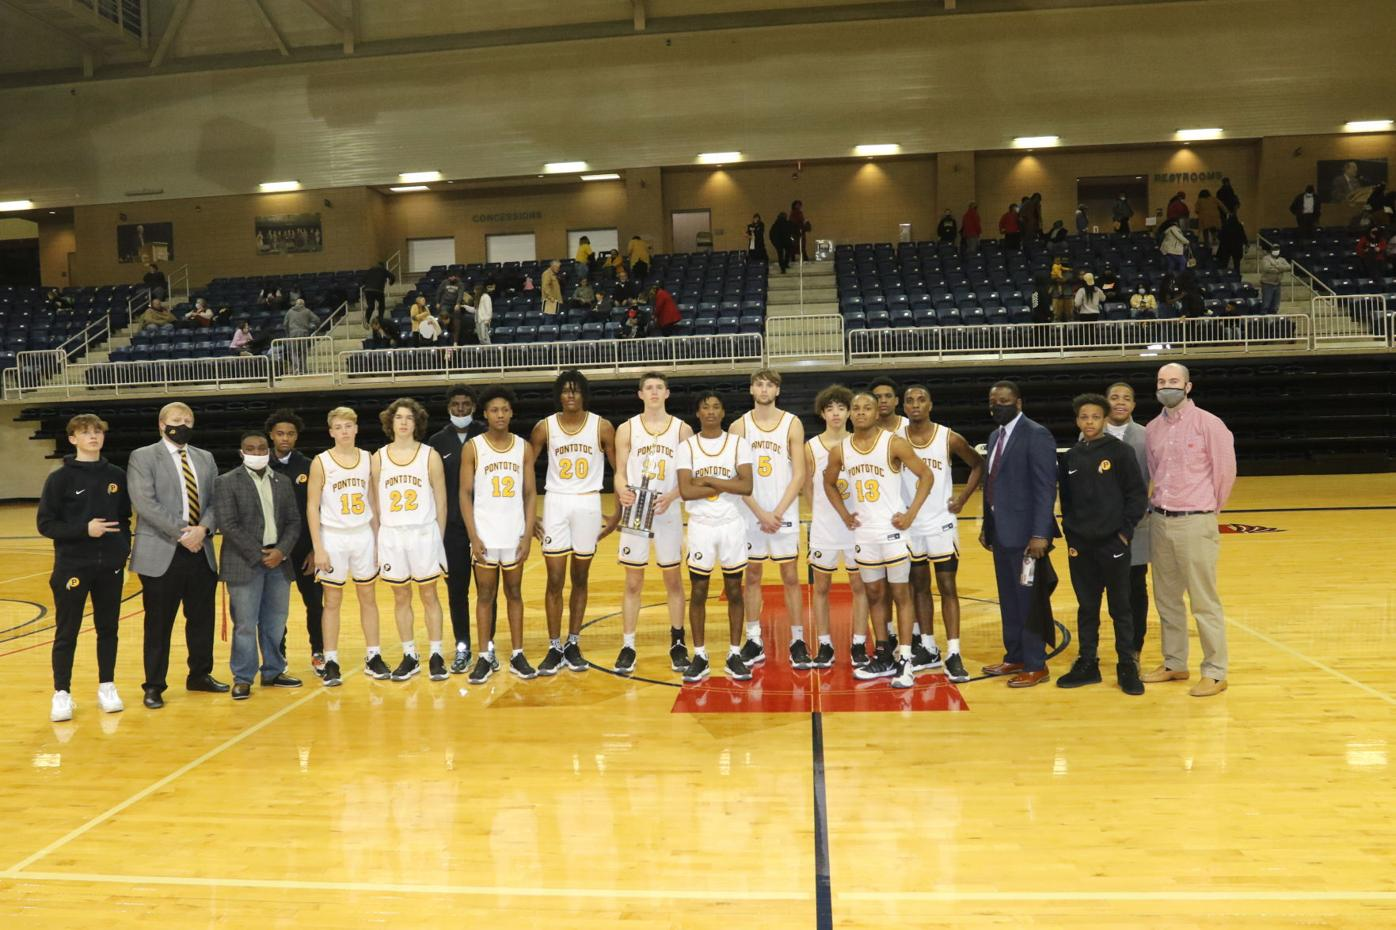 Pontotoc Boys Basketball Team with Trophy